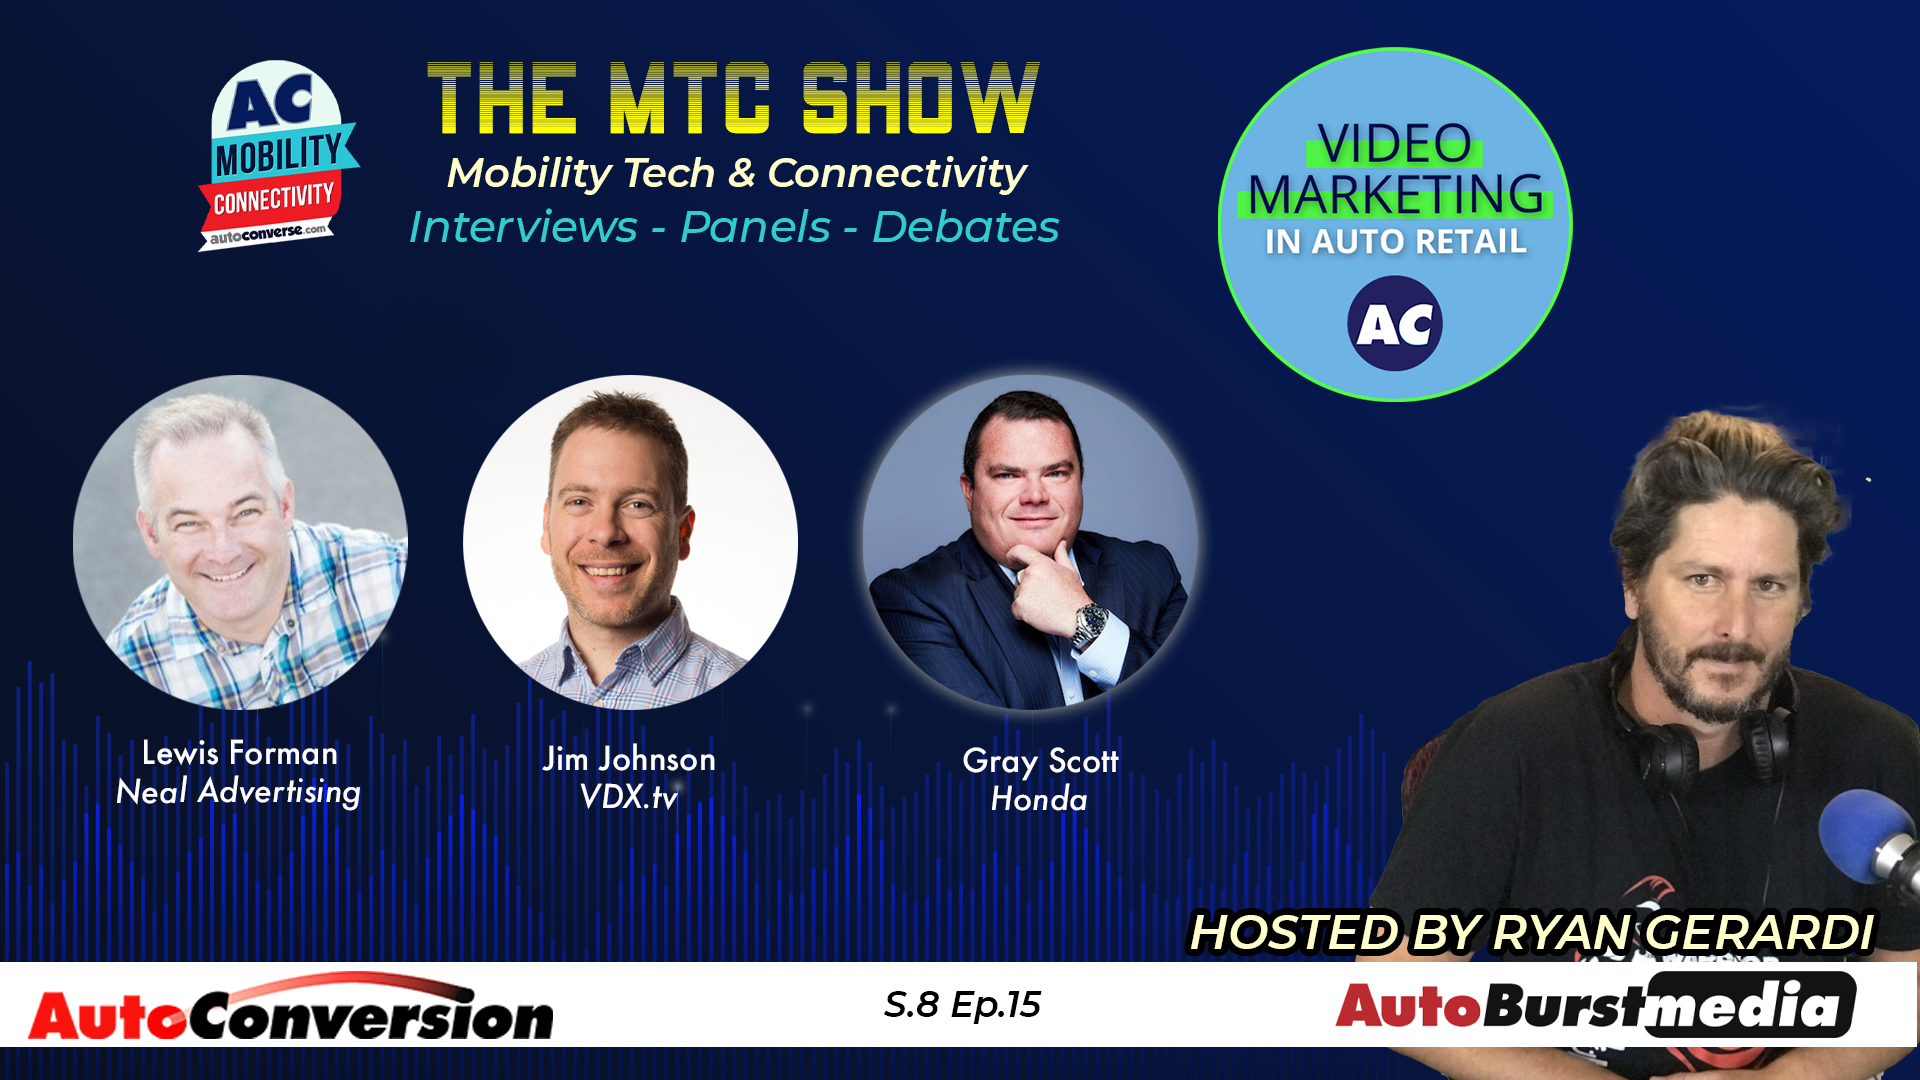 Predictive Data, Video, and How OEMs Can Improve Marketing Efforts [VIDEO]